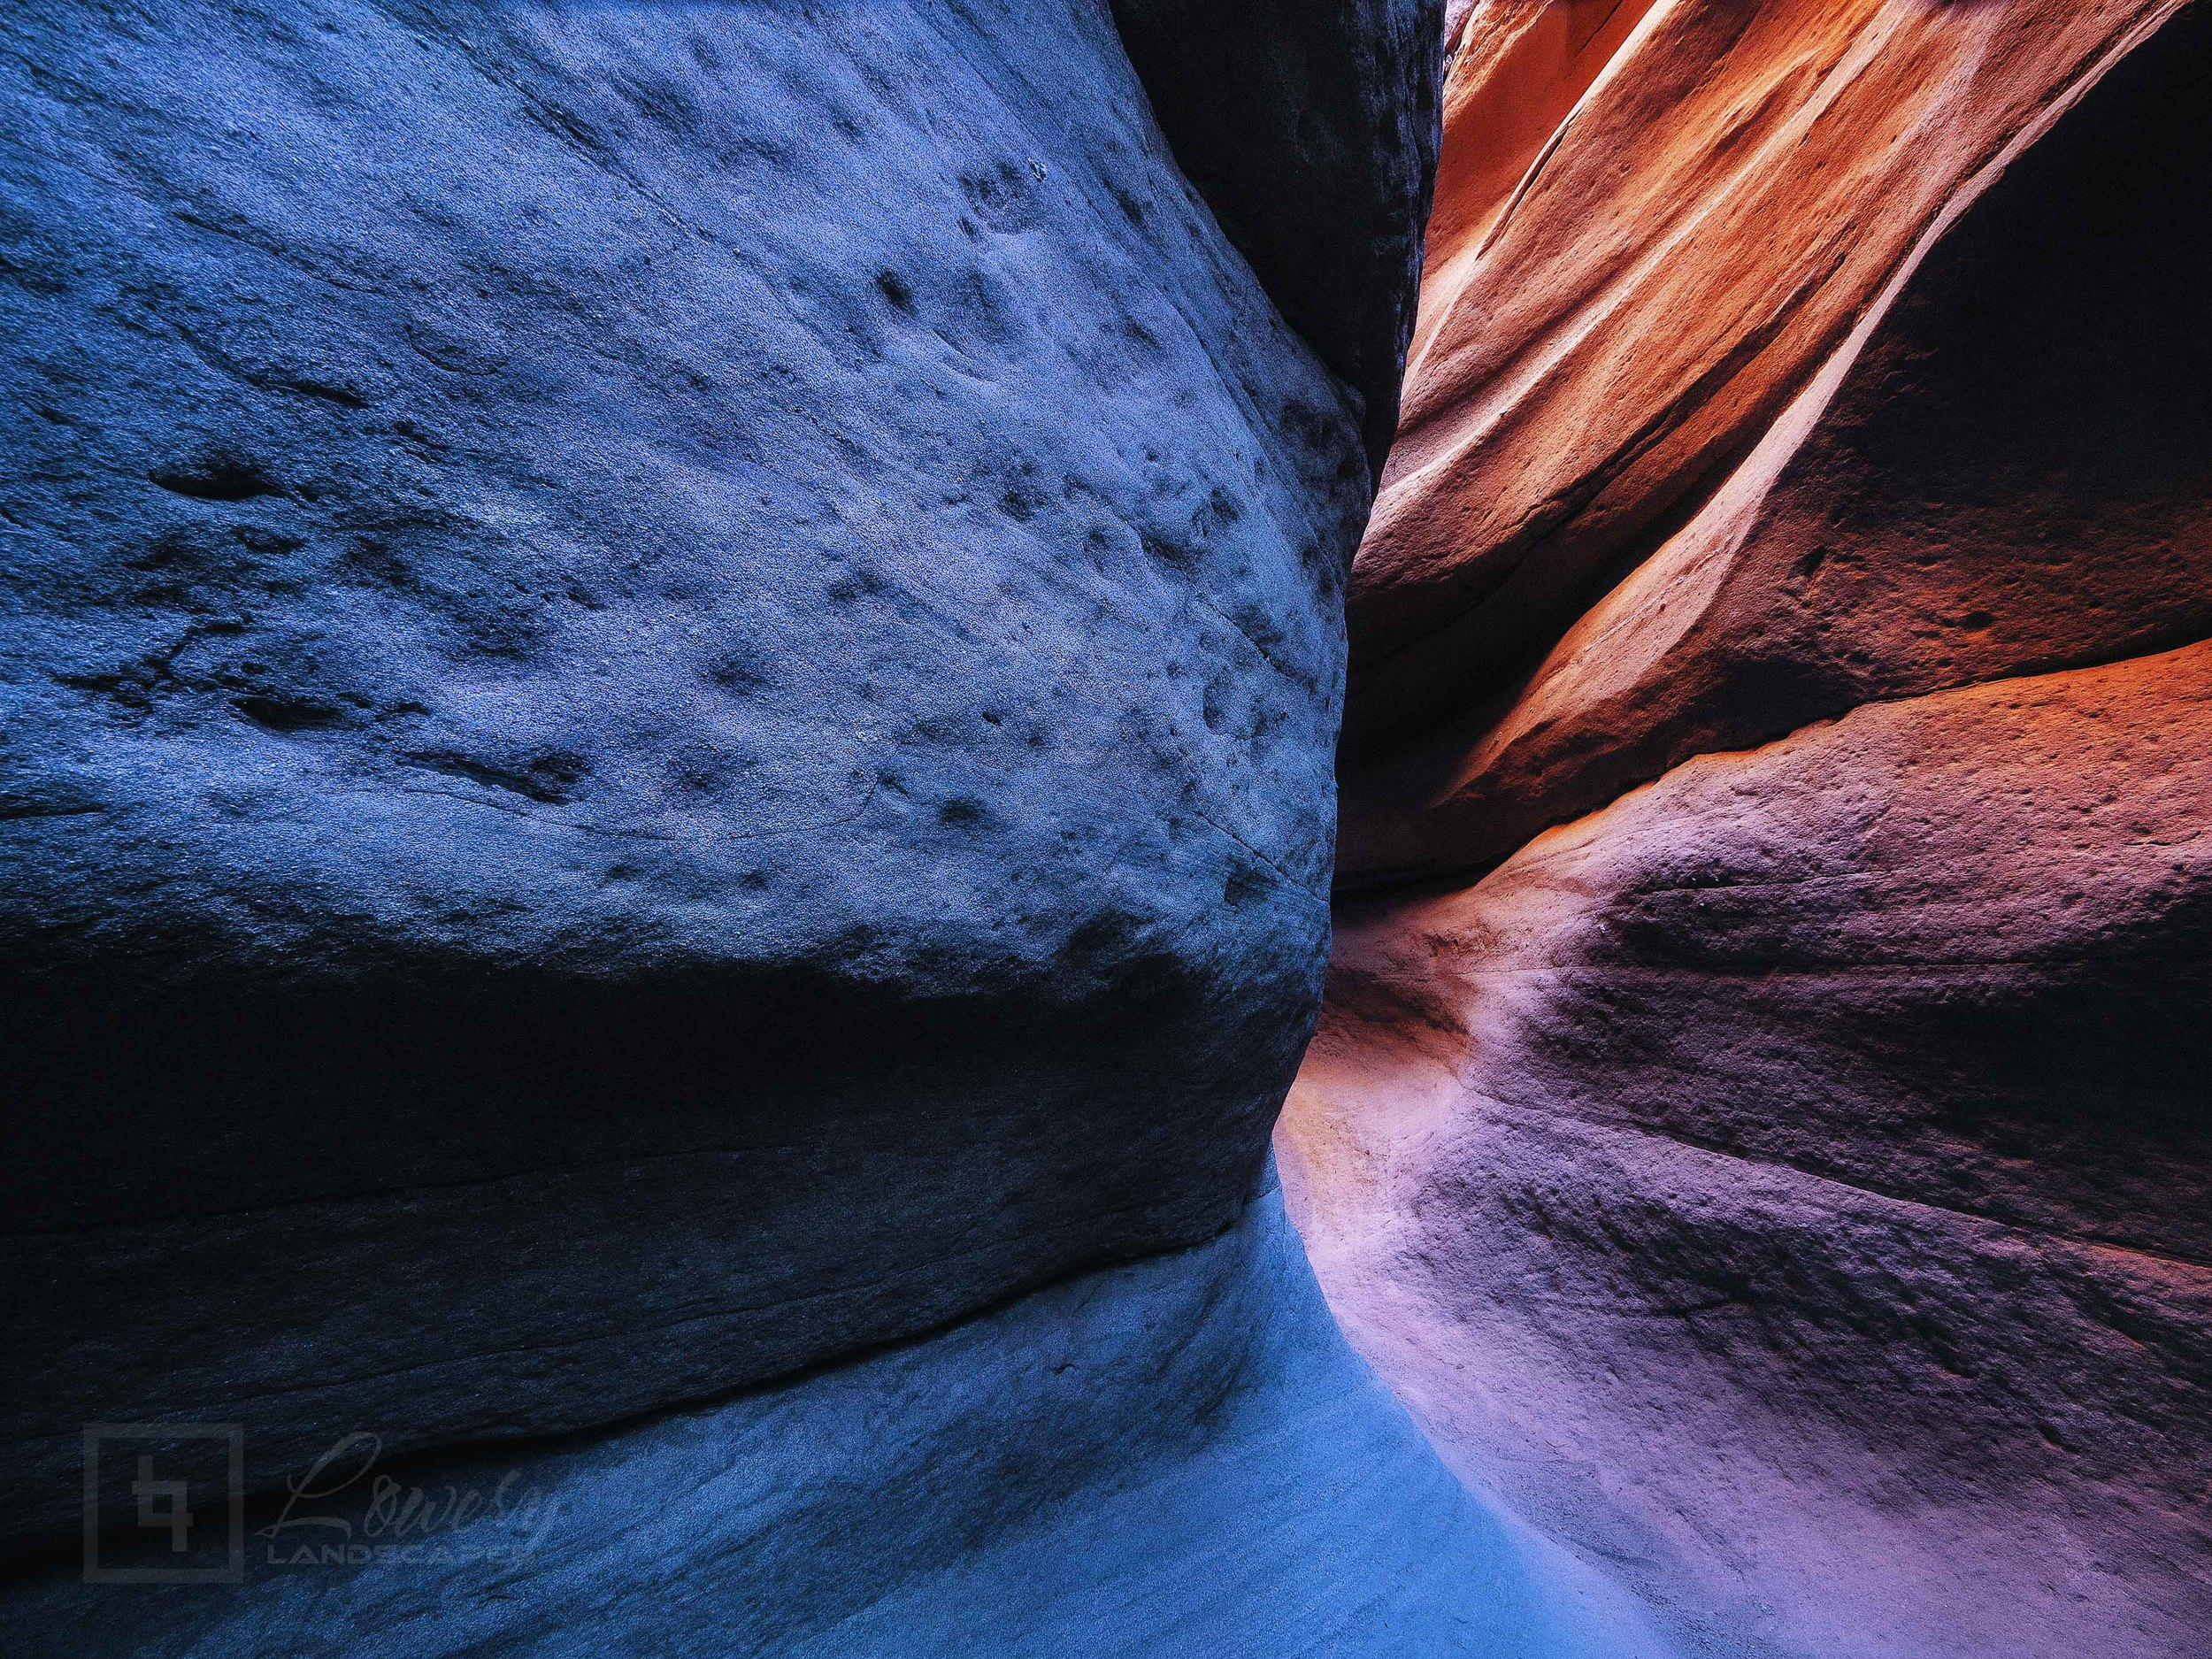 Rosy golden light reflects down into this deep slot canyon in Southern California's Colorado Desert Region.